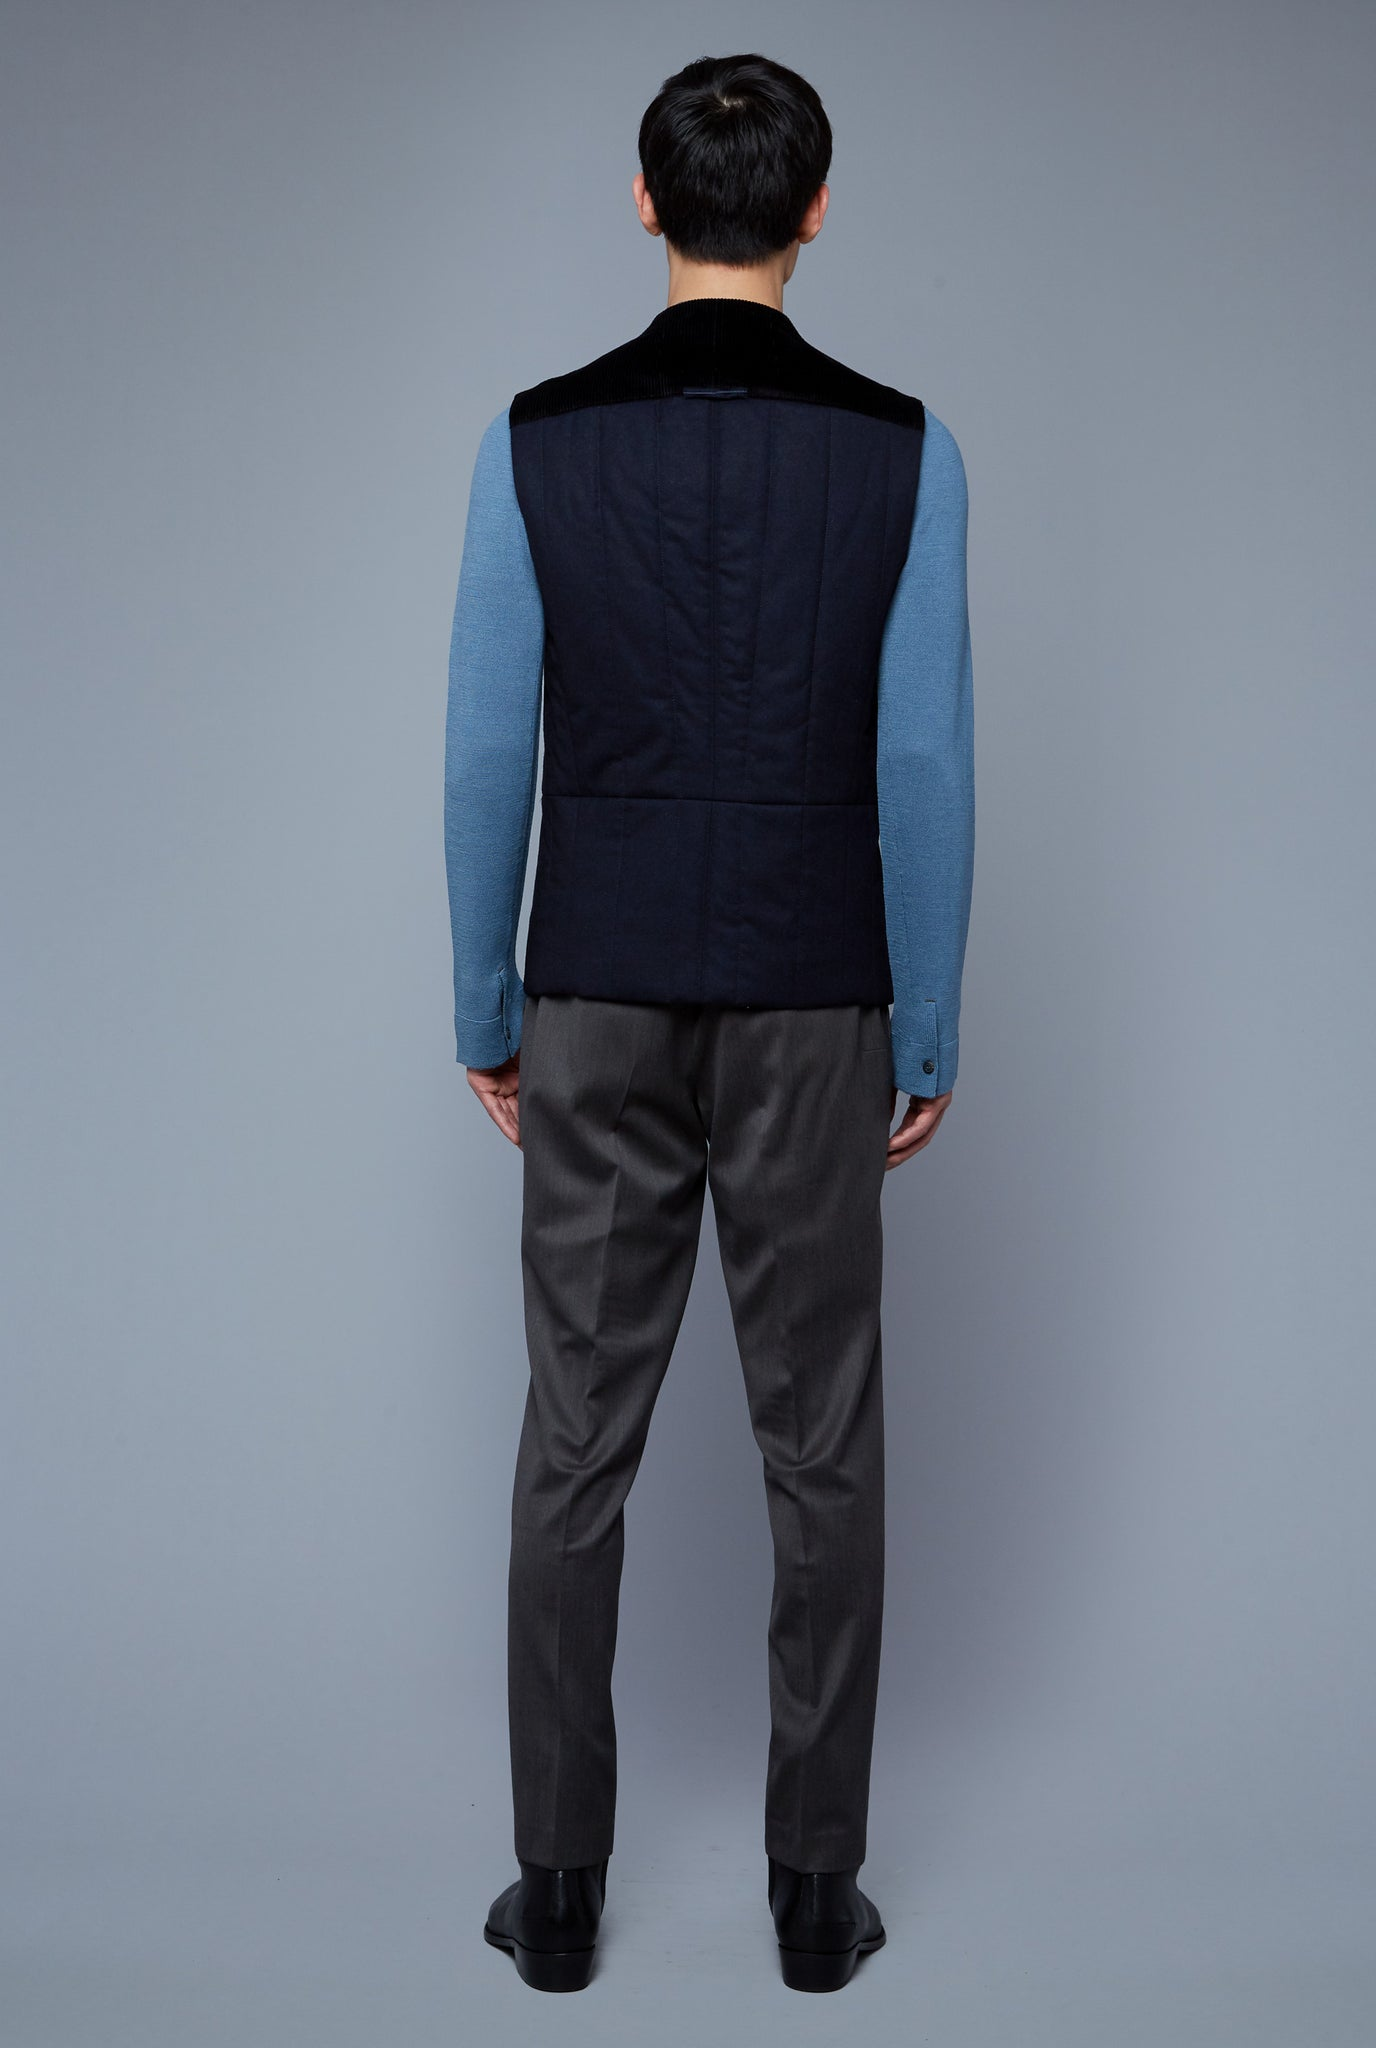 Back View: Model Qiang Li wearing Down Vest